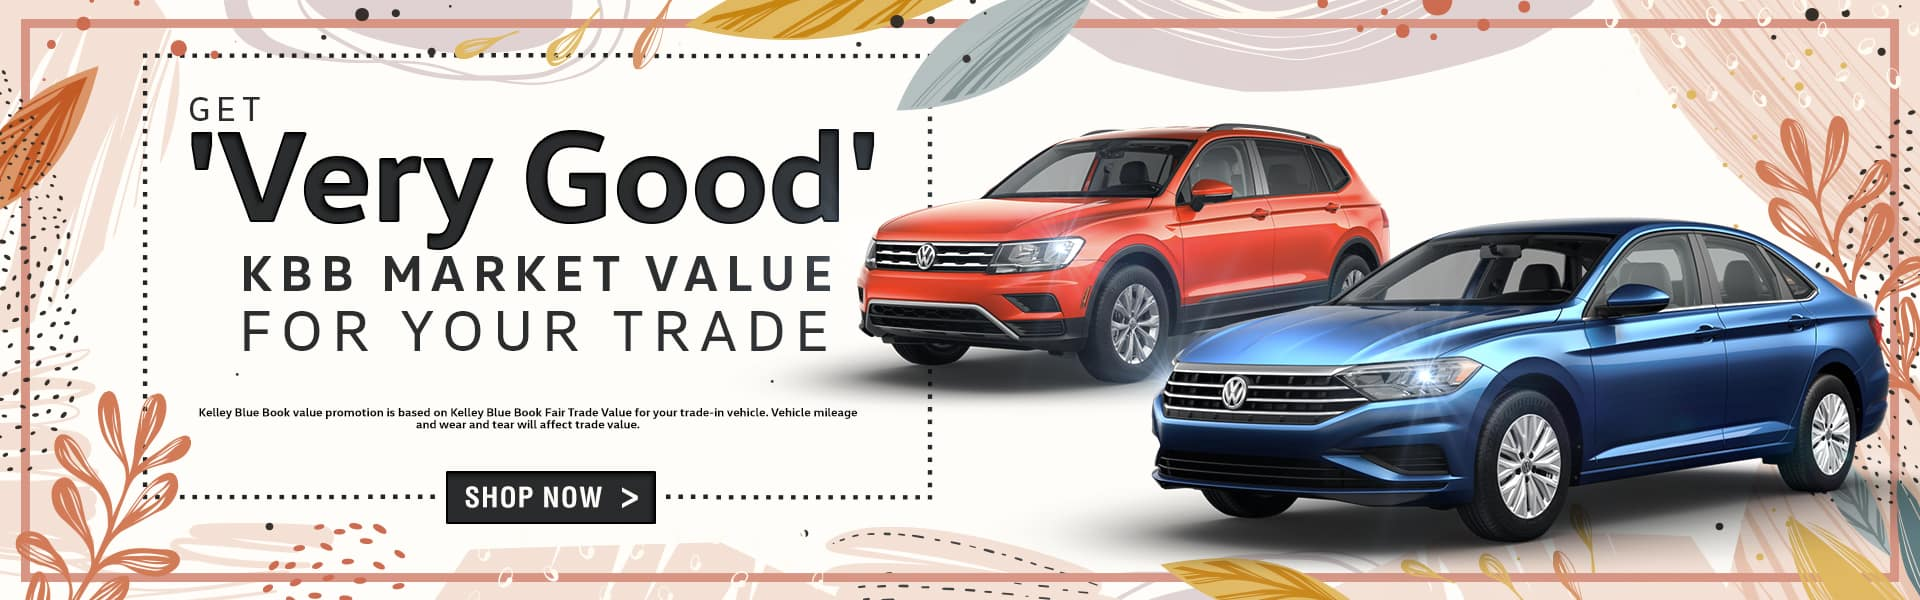 Get 'Very Good' KBB Market Value For Your Trade